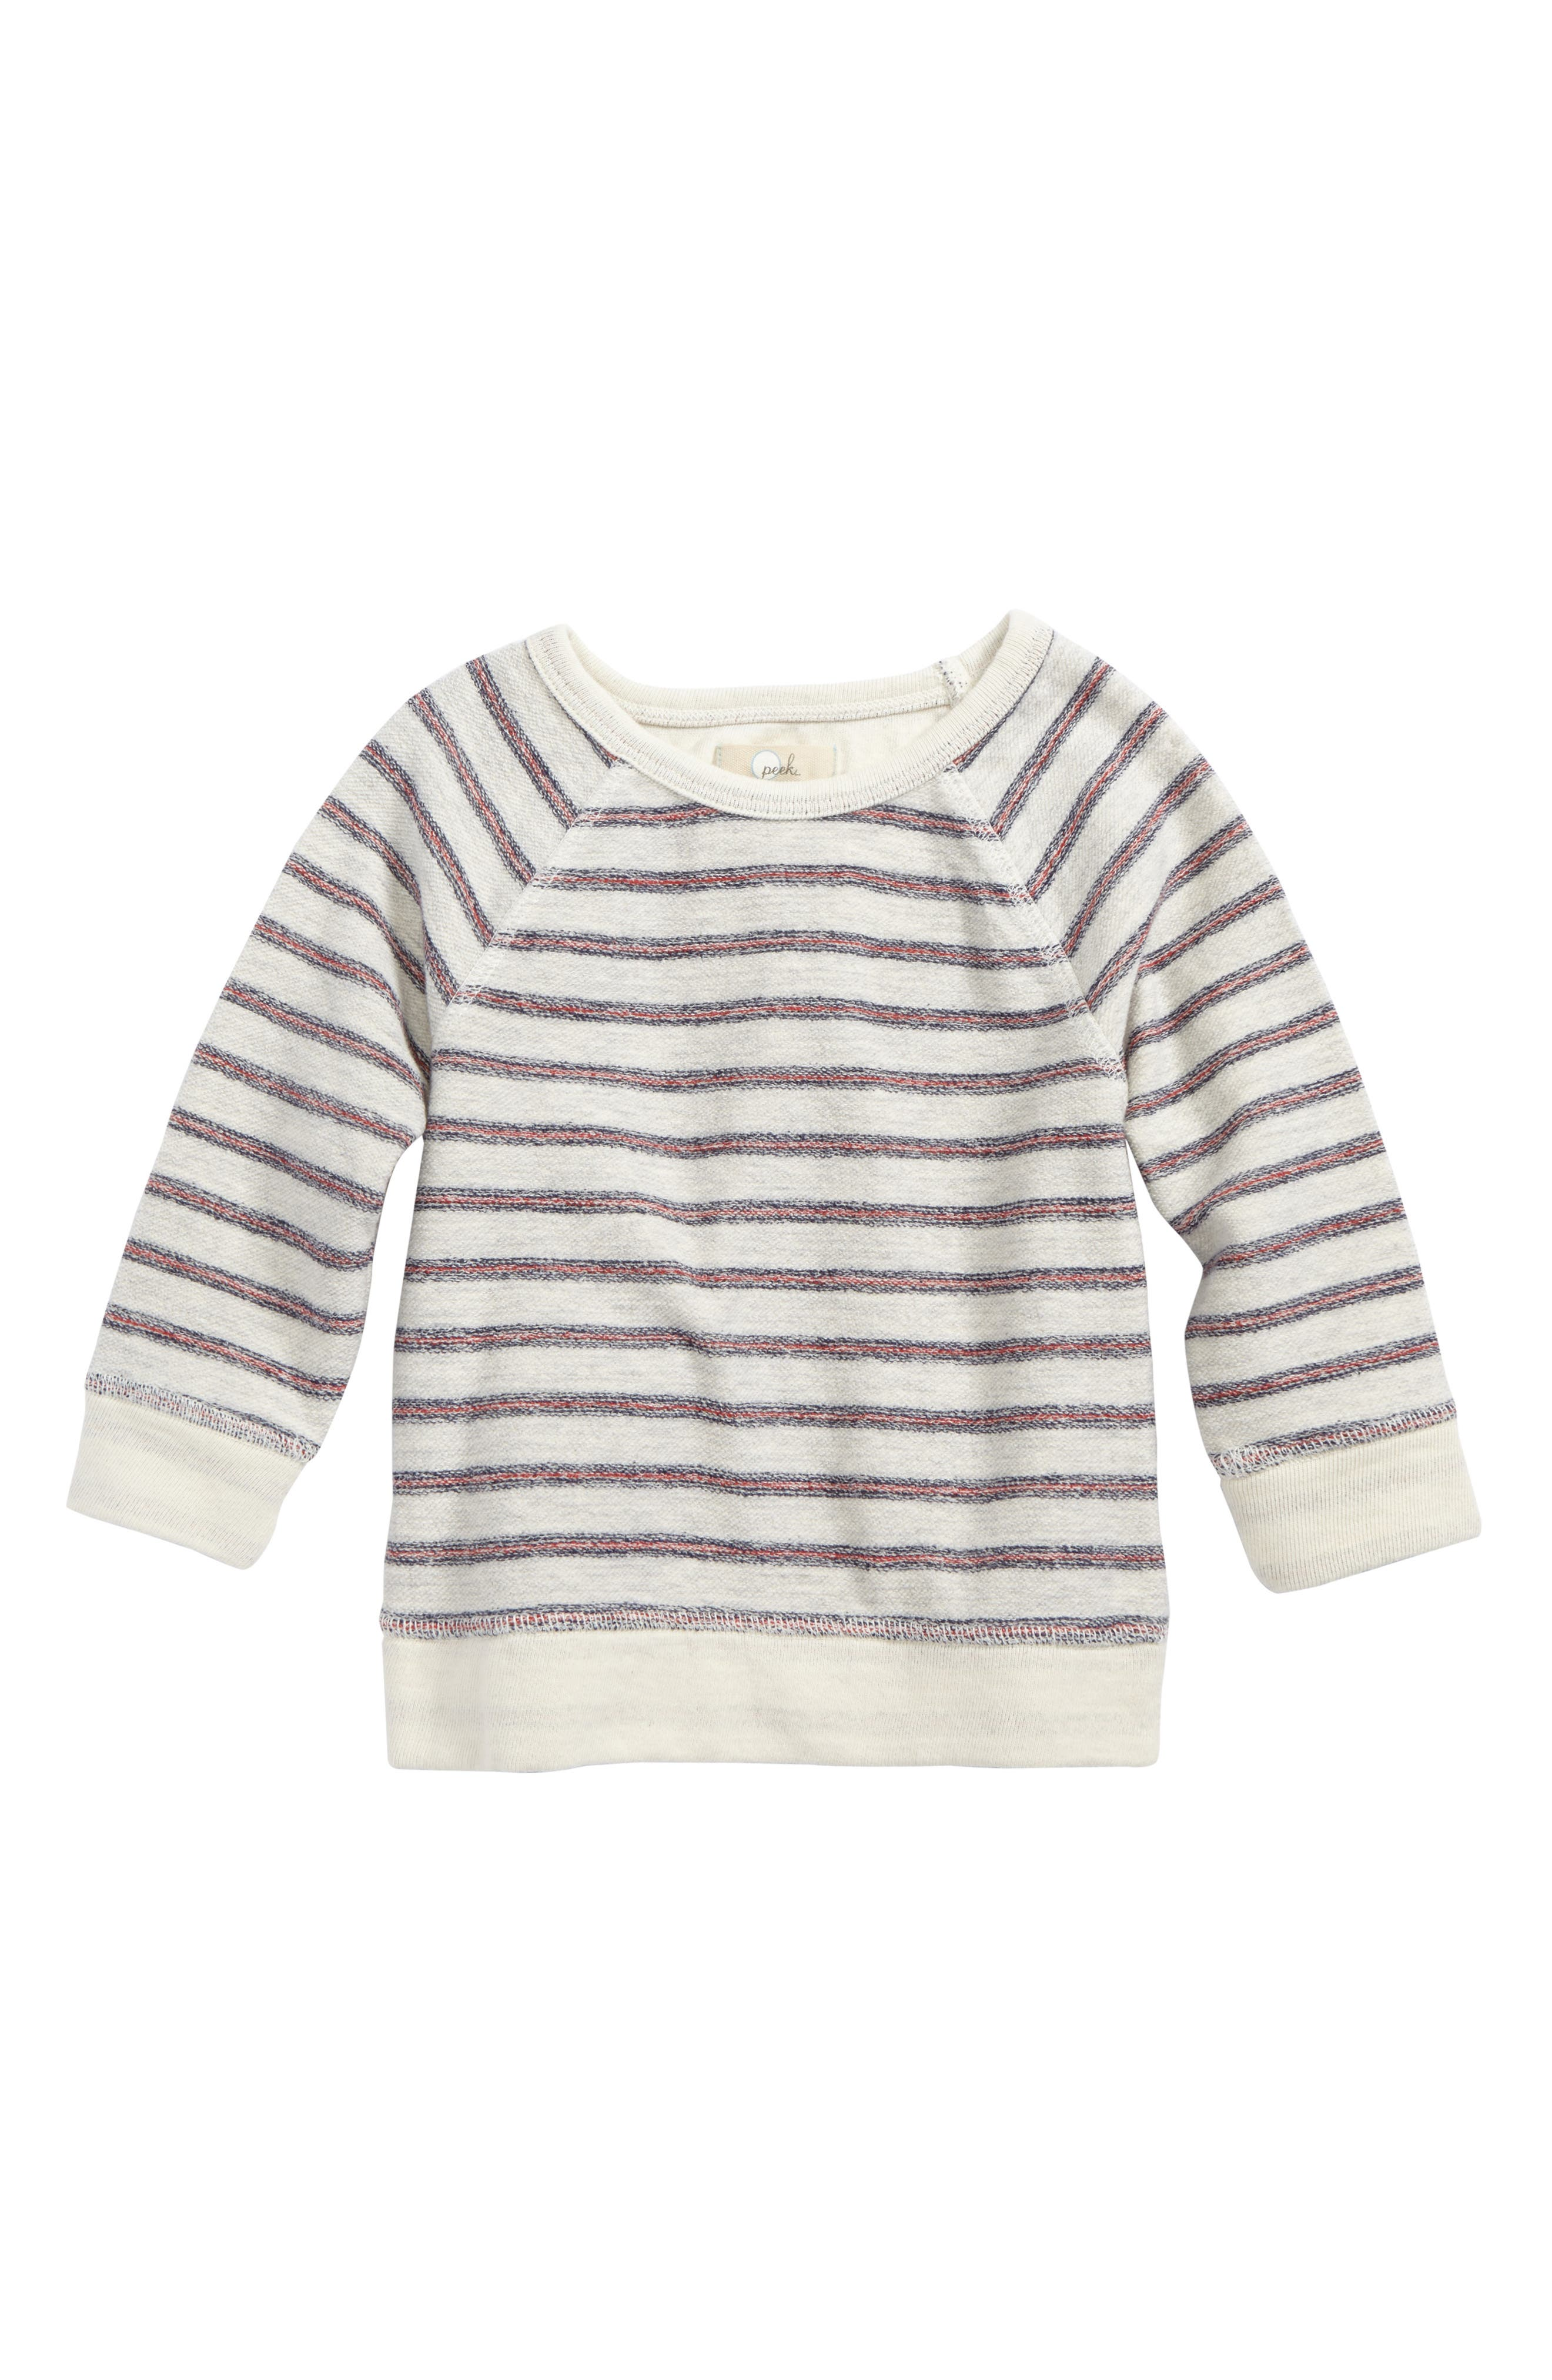 Peek Ziggy Stripe Sweatshirt (Baby Boys)